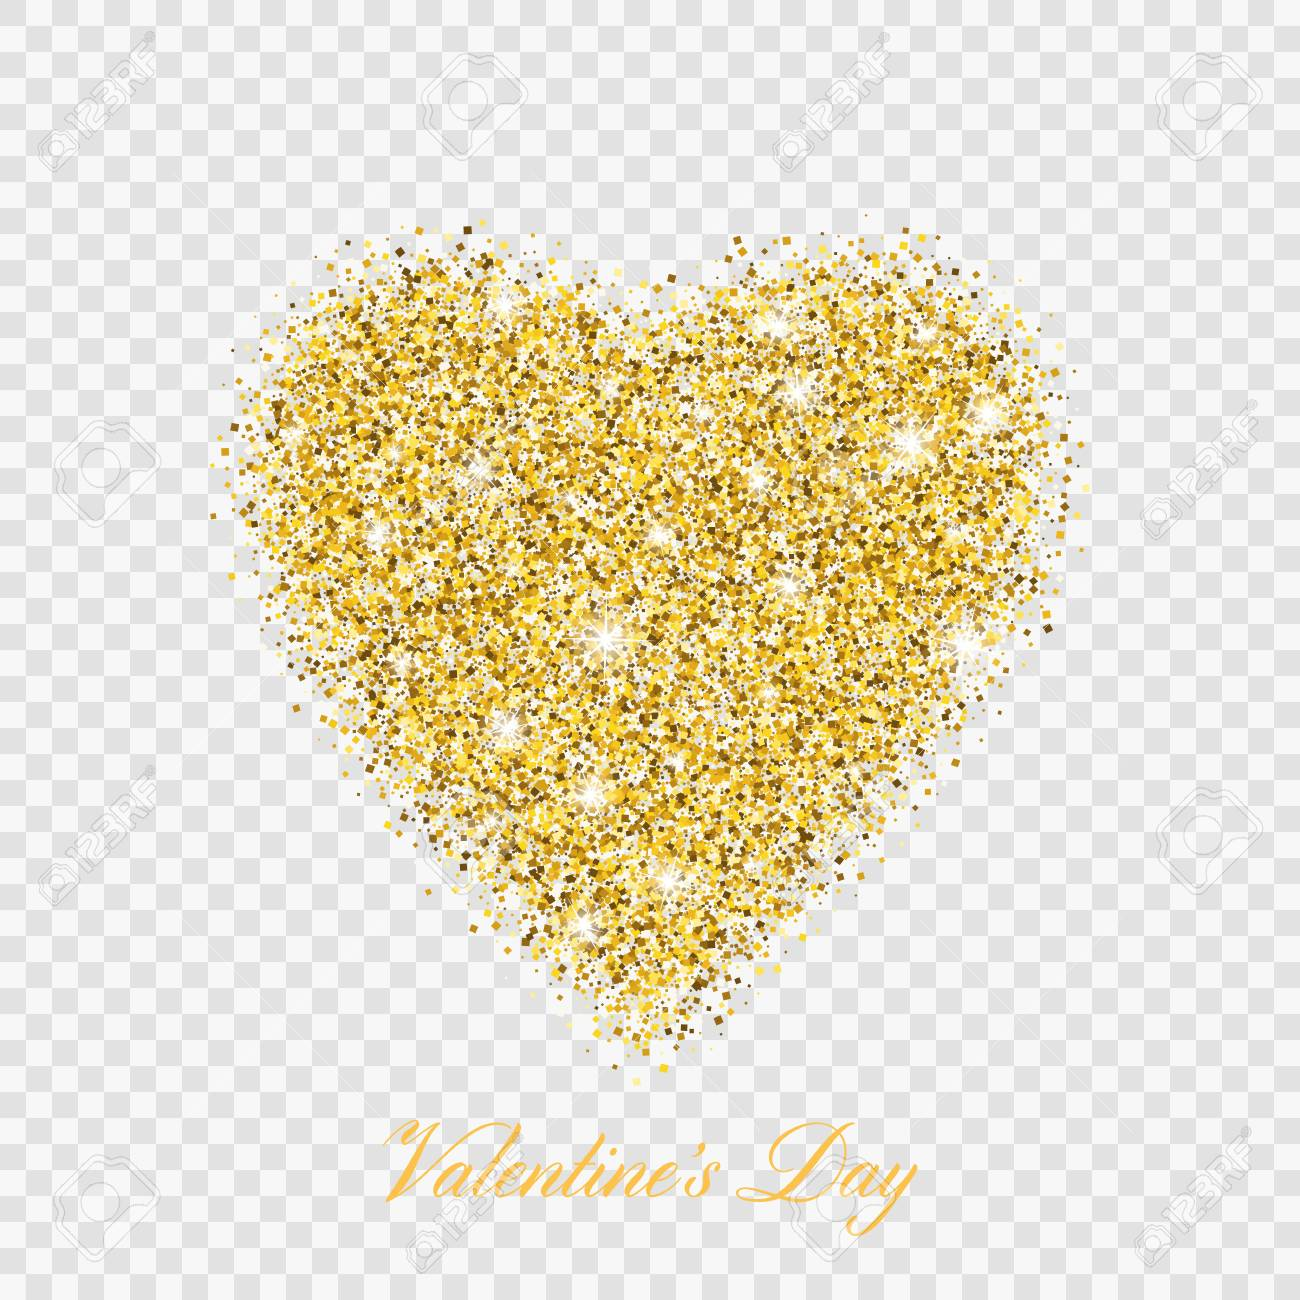 Valentine day gold glitter shiny heart. Vector illustration love heart symbol isolated on transparent background - 126055305